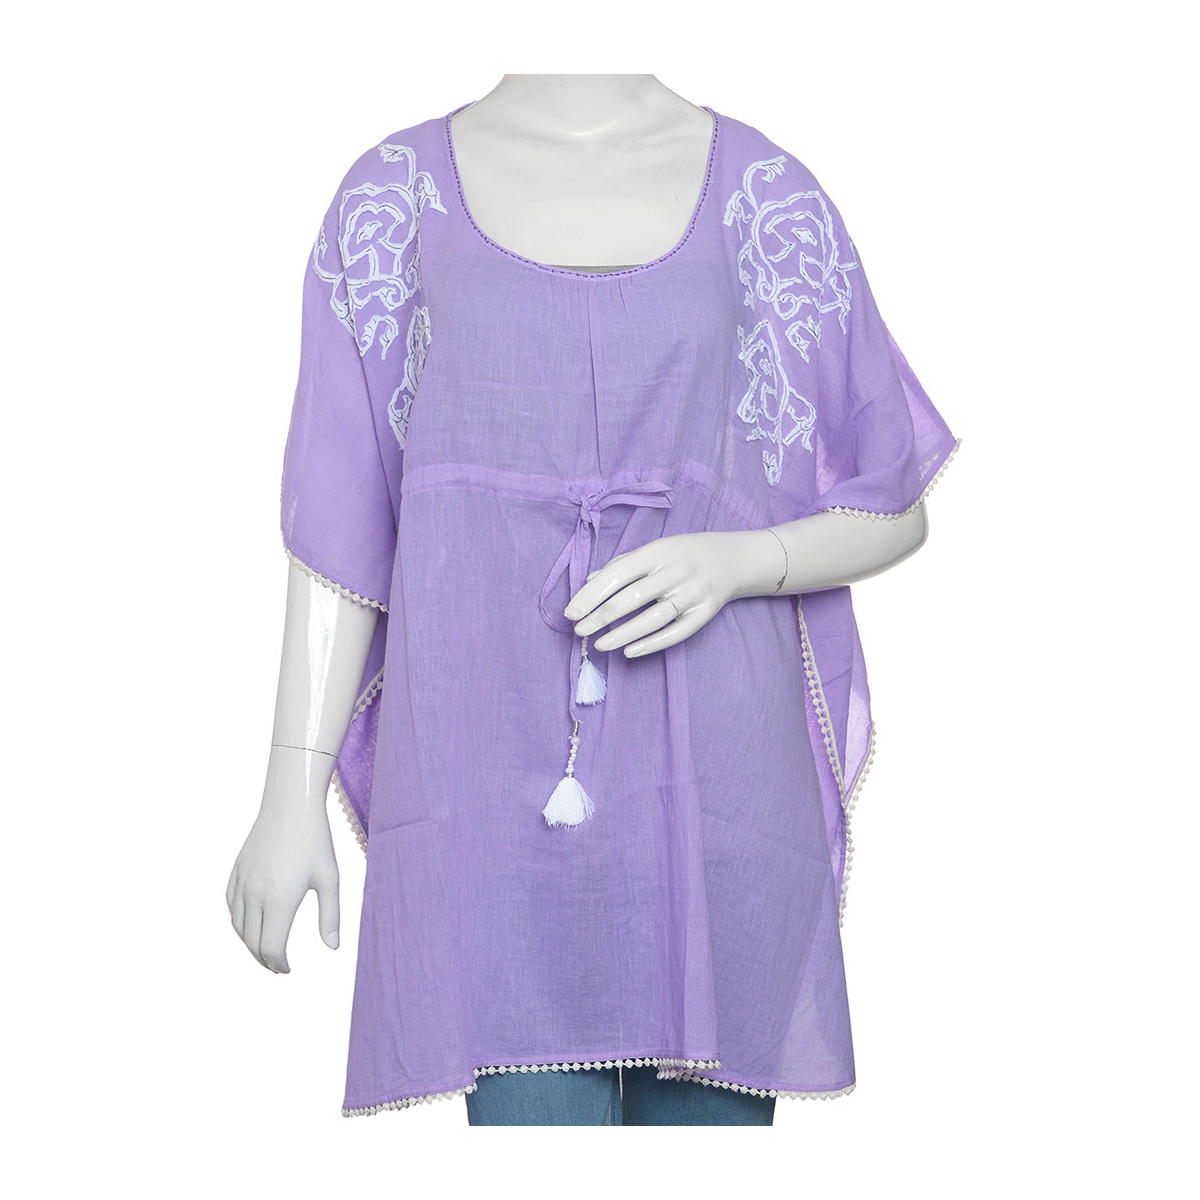 d82916281e388a Purple 100% Cotton Embroidered Kaftan with Drawstring Tassels (One Size)